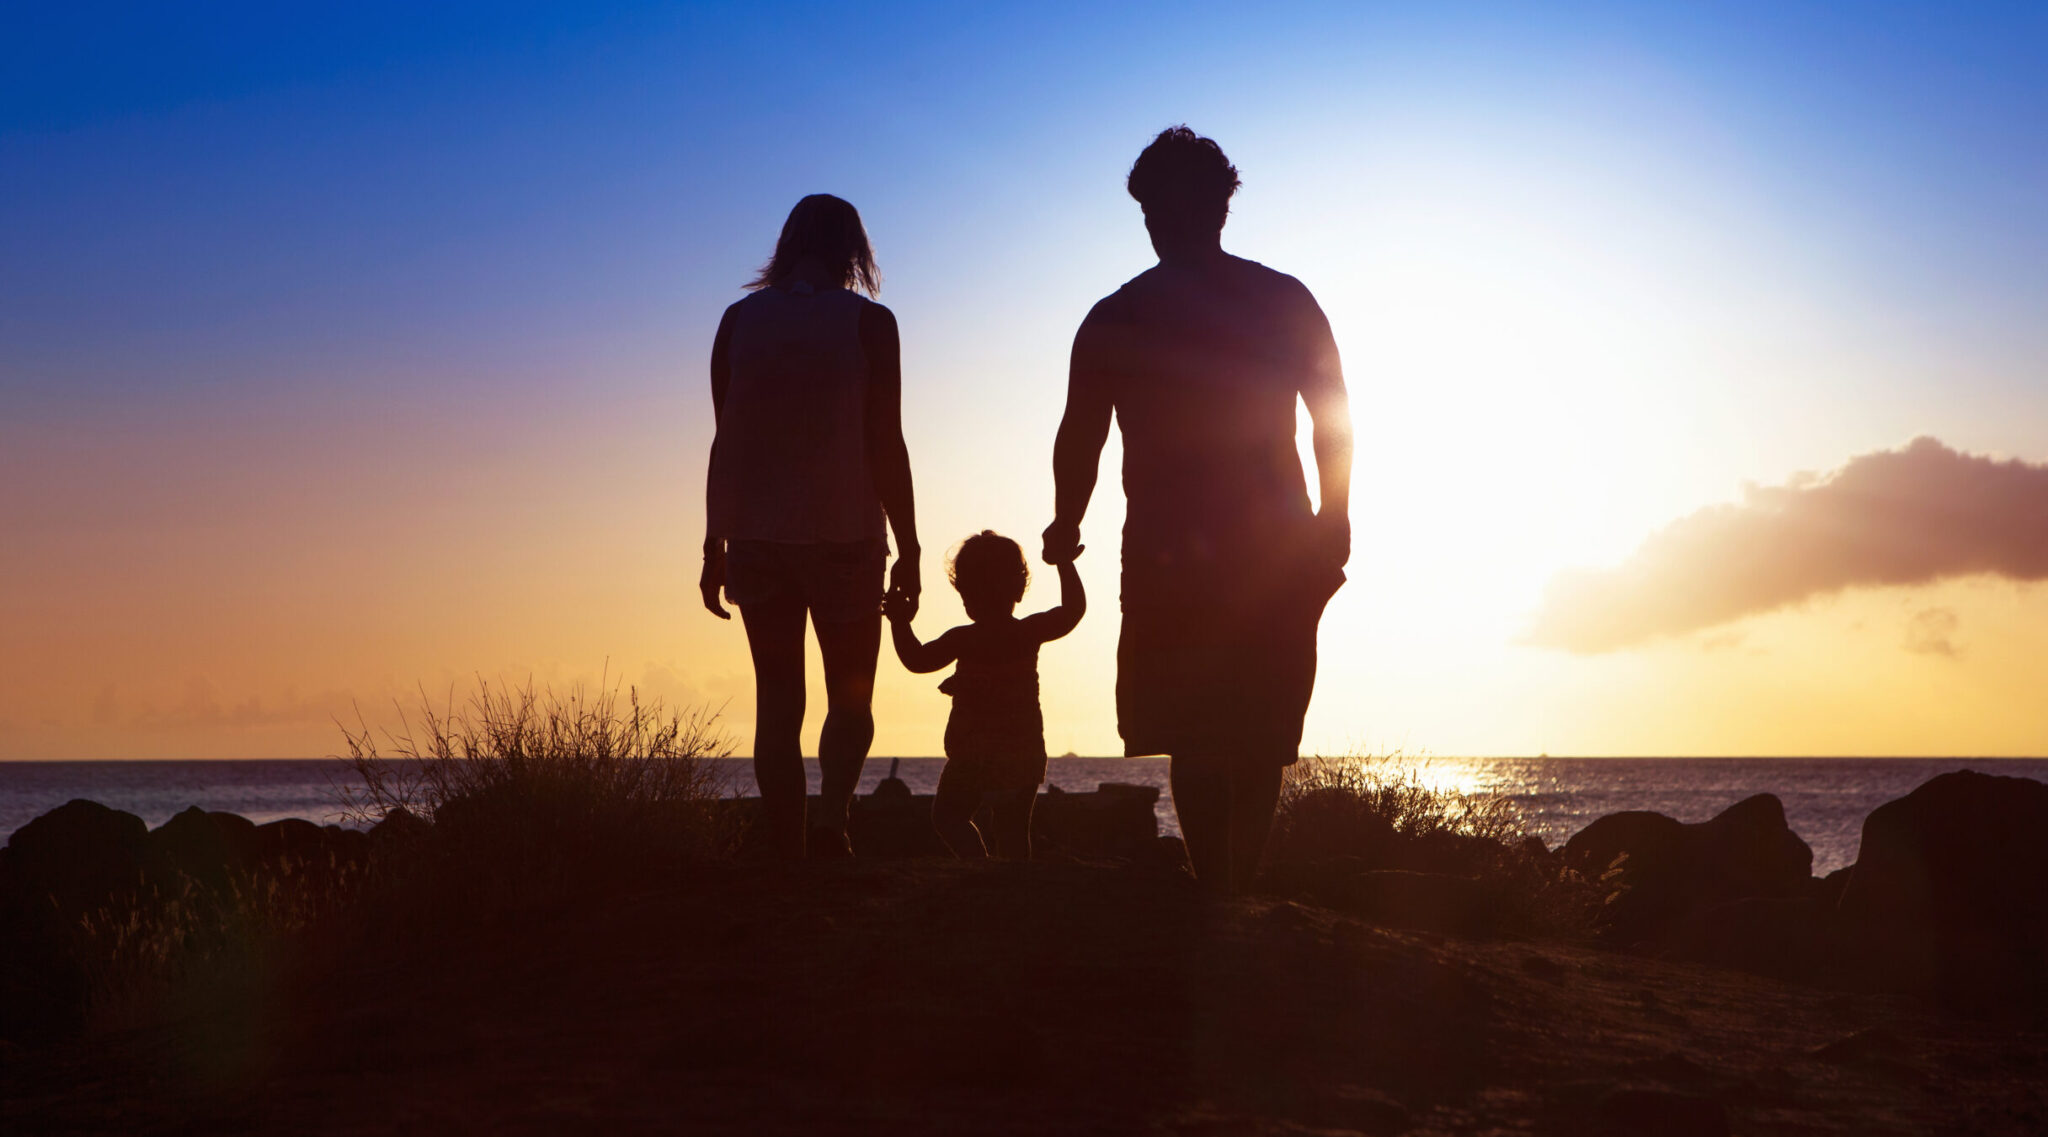 A family walks into the sunset on the beach with their young daughter